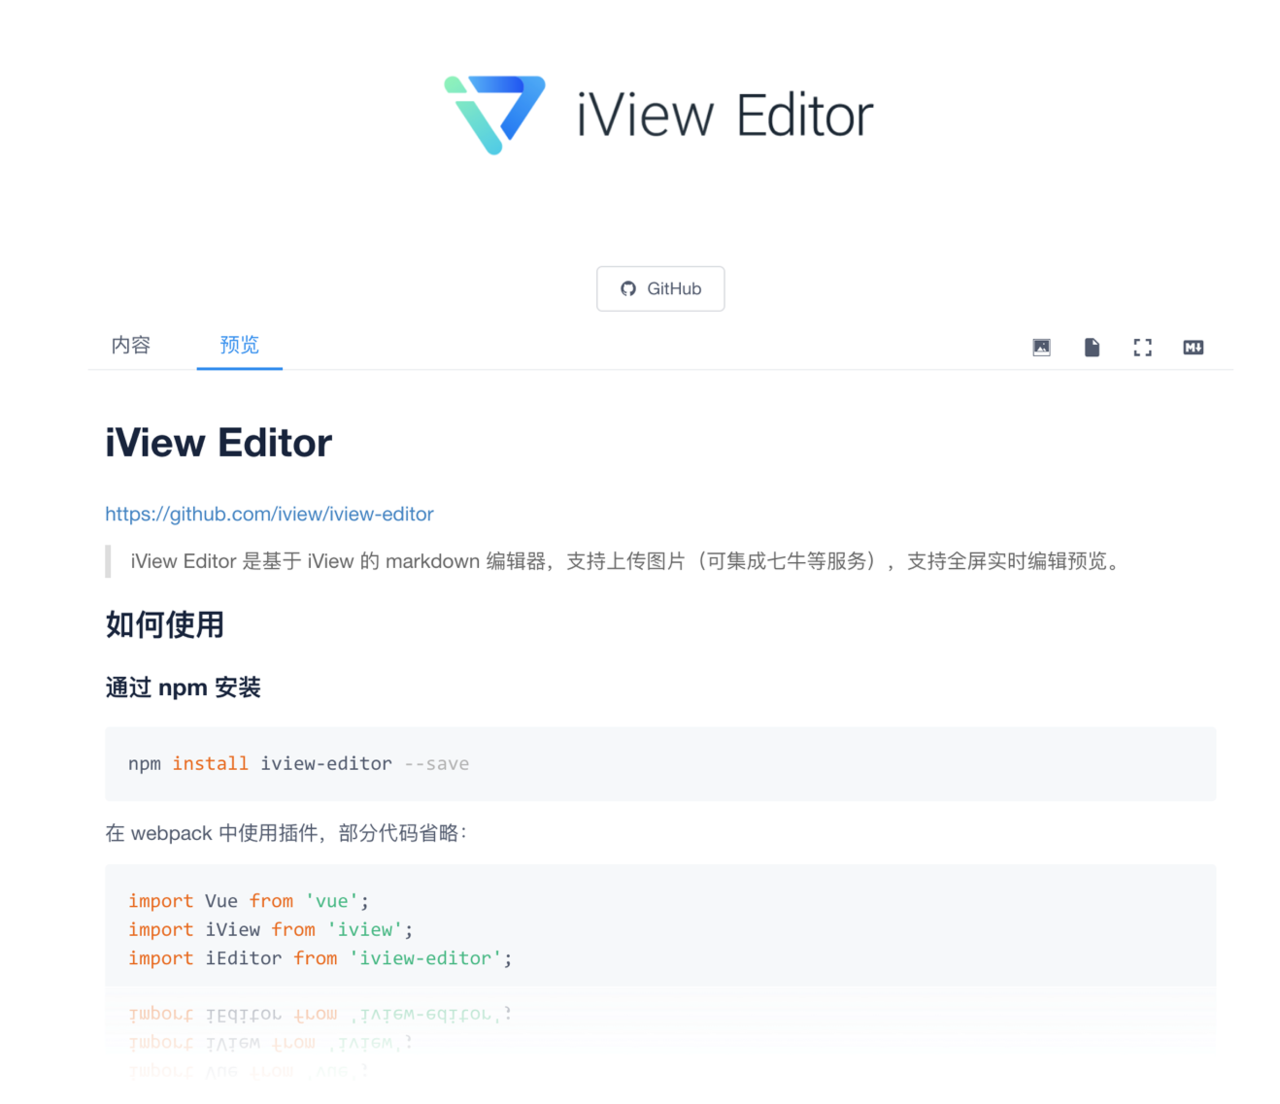 iView Editor